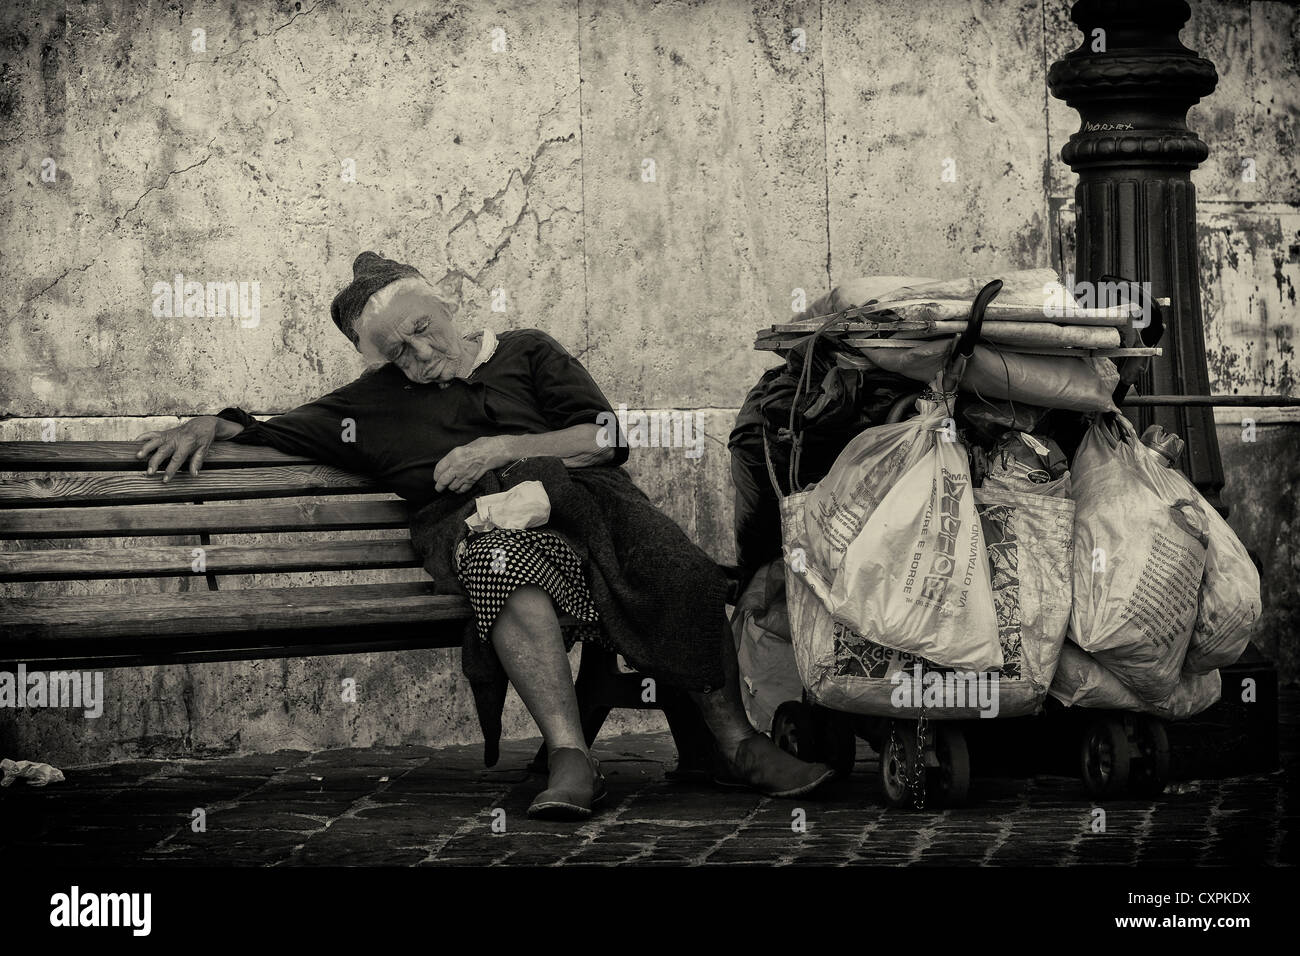 Old lady tramp on bench in Rome, Italy. - Stock Image